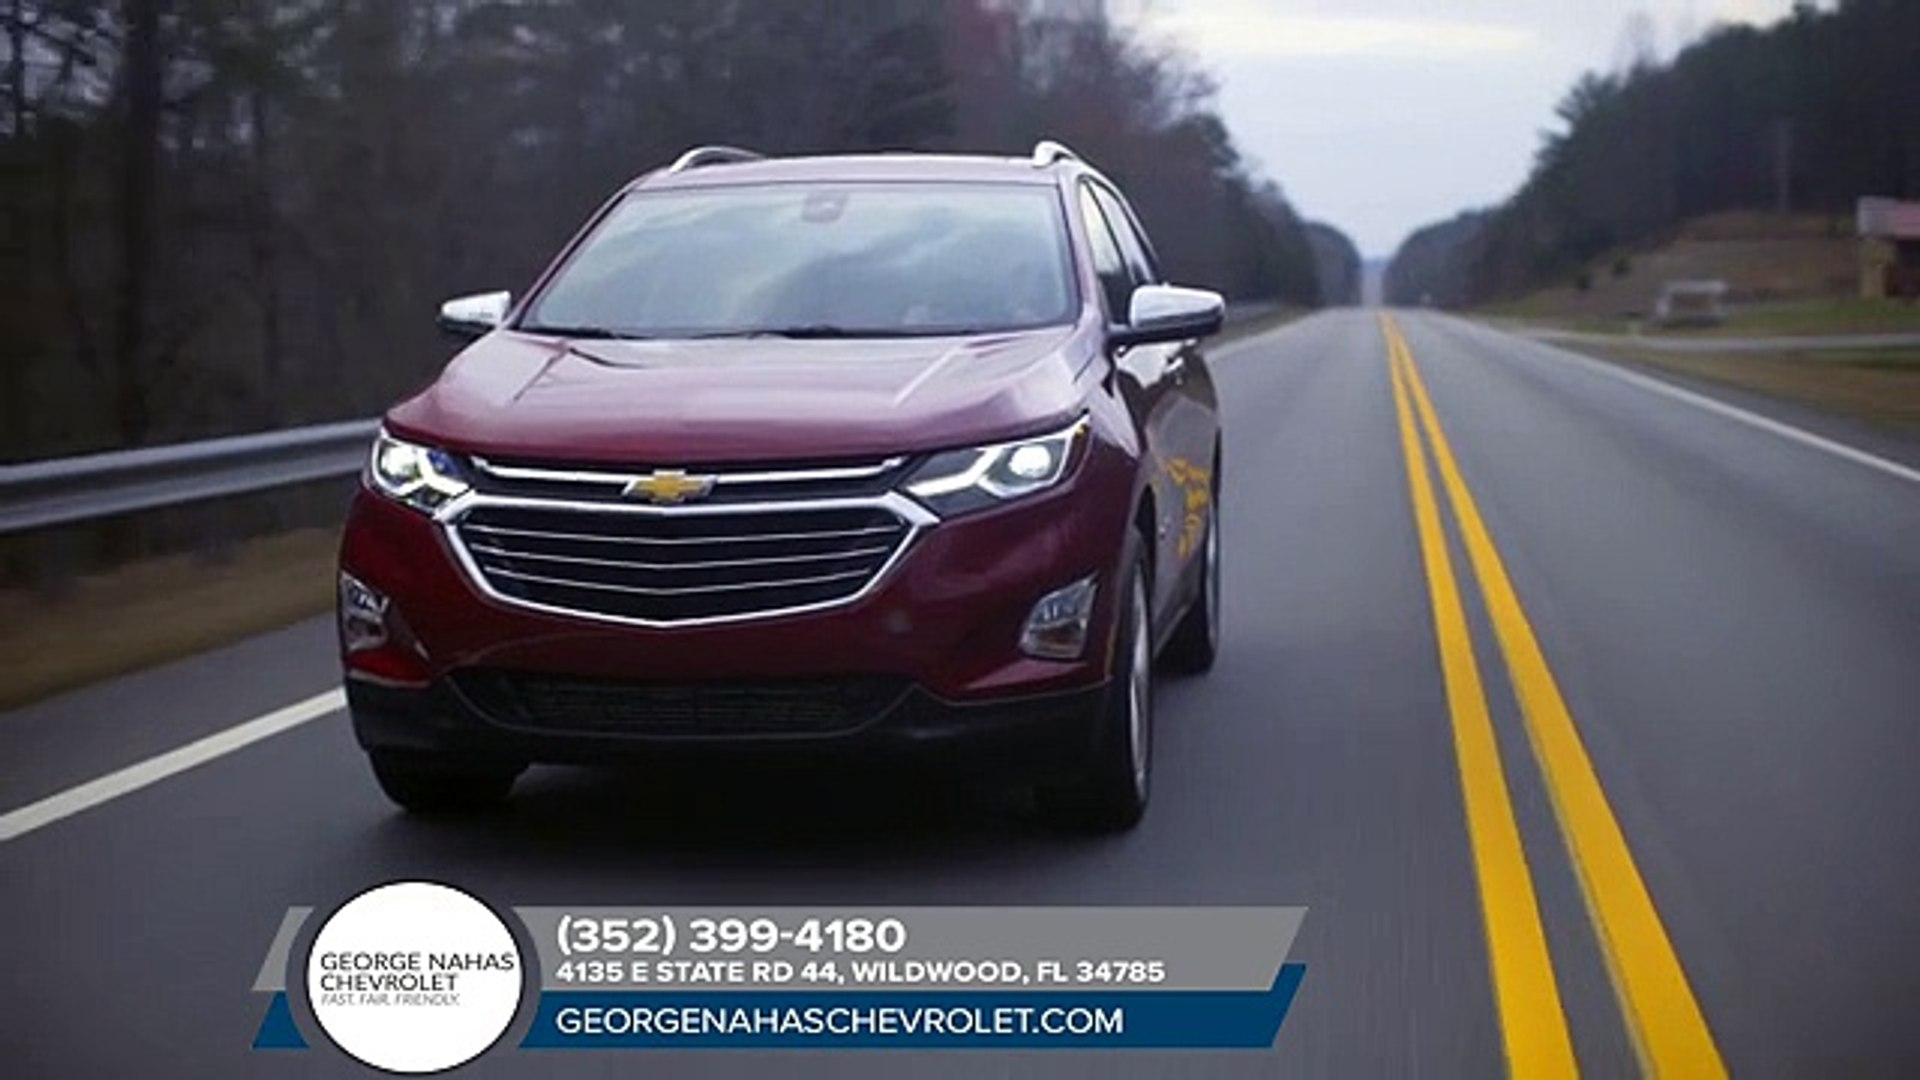 2018 Chevrolet Equinox The Villages Fl Chevrolet Dealership The Villages Fl Video Dailymotion